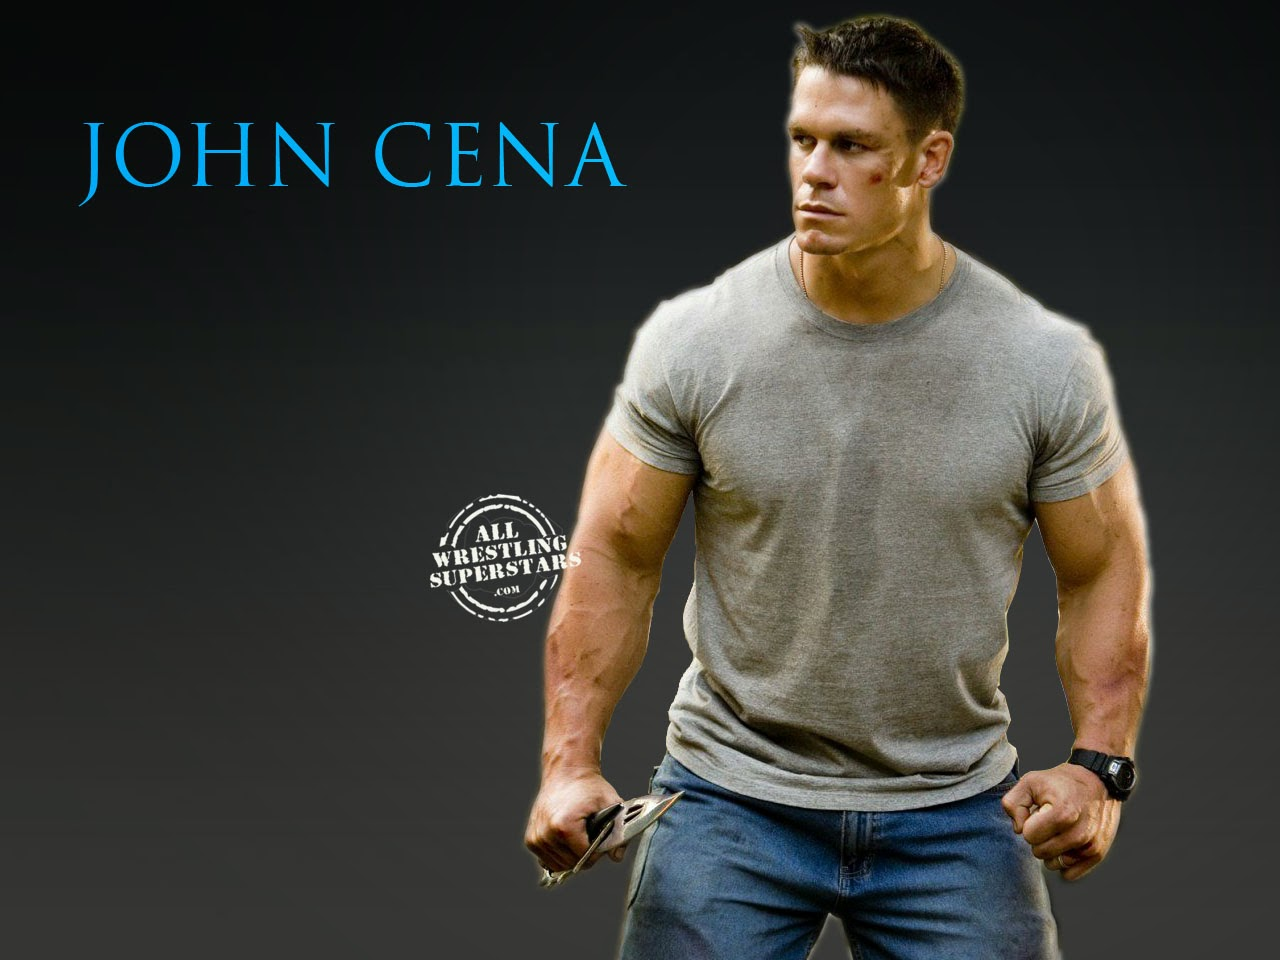 Wwe Superstar John Cena Wallpapers Download